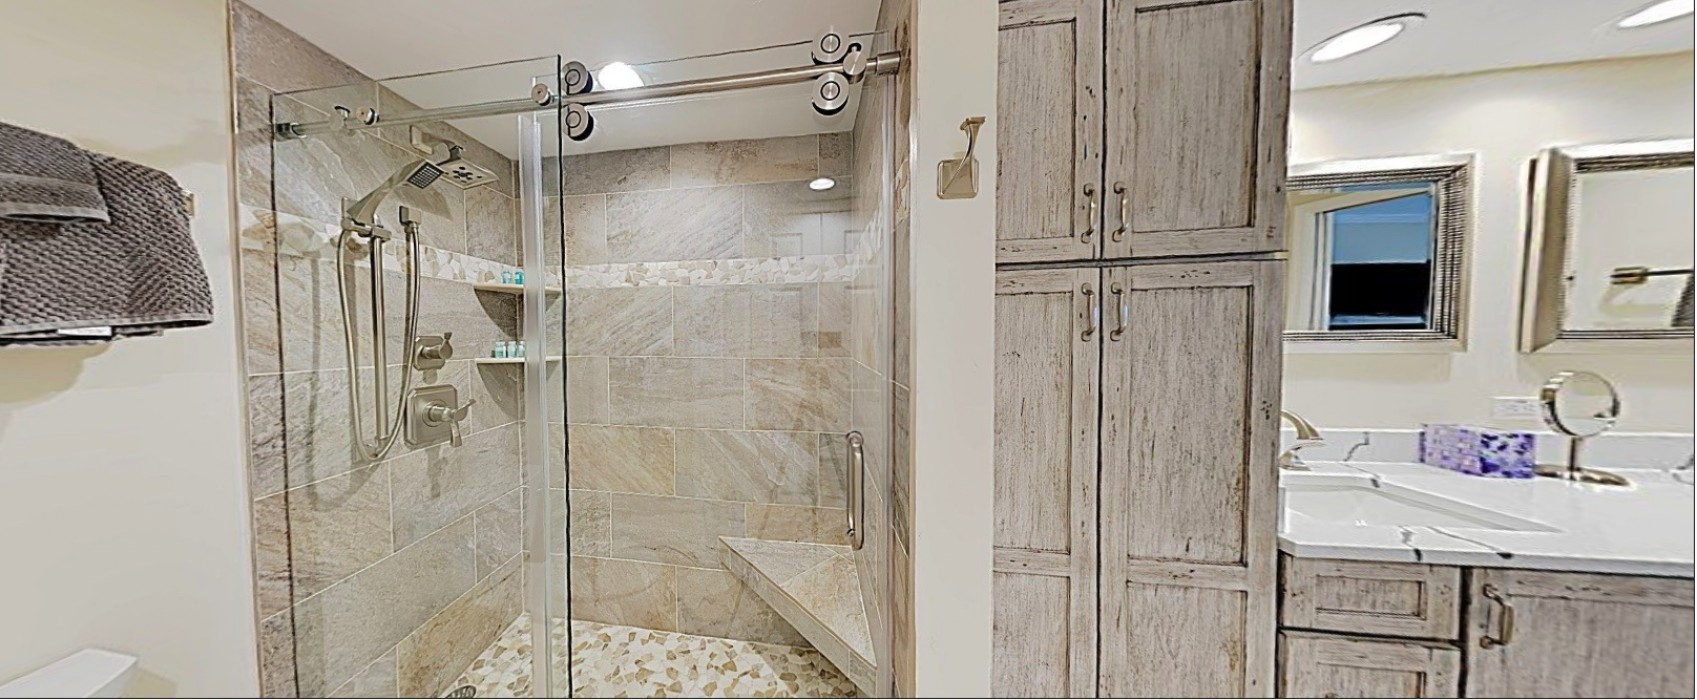 E45: Luxury Walk-in Shower Unit